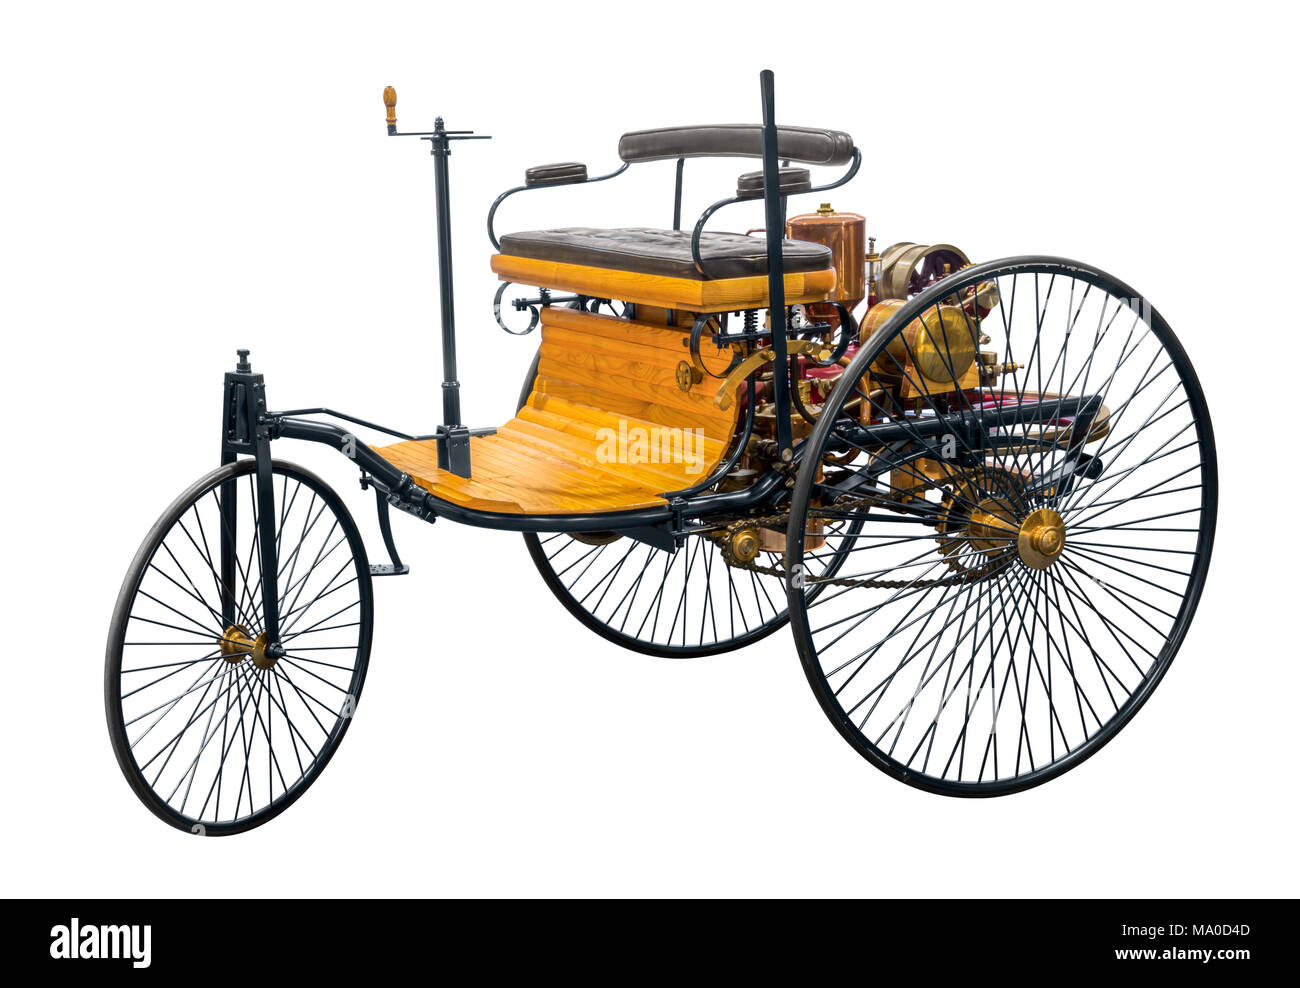 replica of a old historic vehicle named patent motorcar isolated in white back - Stock Image